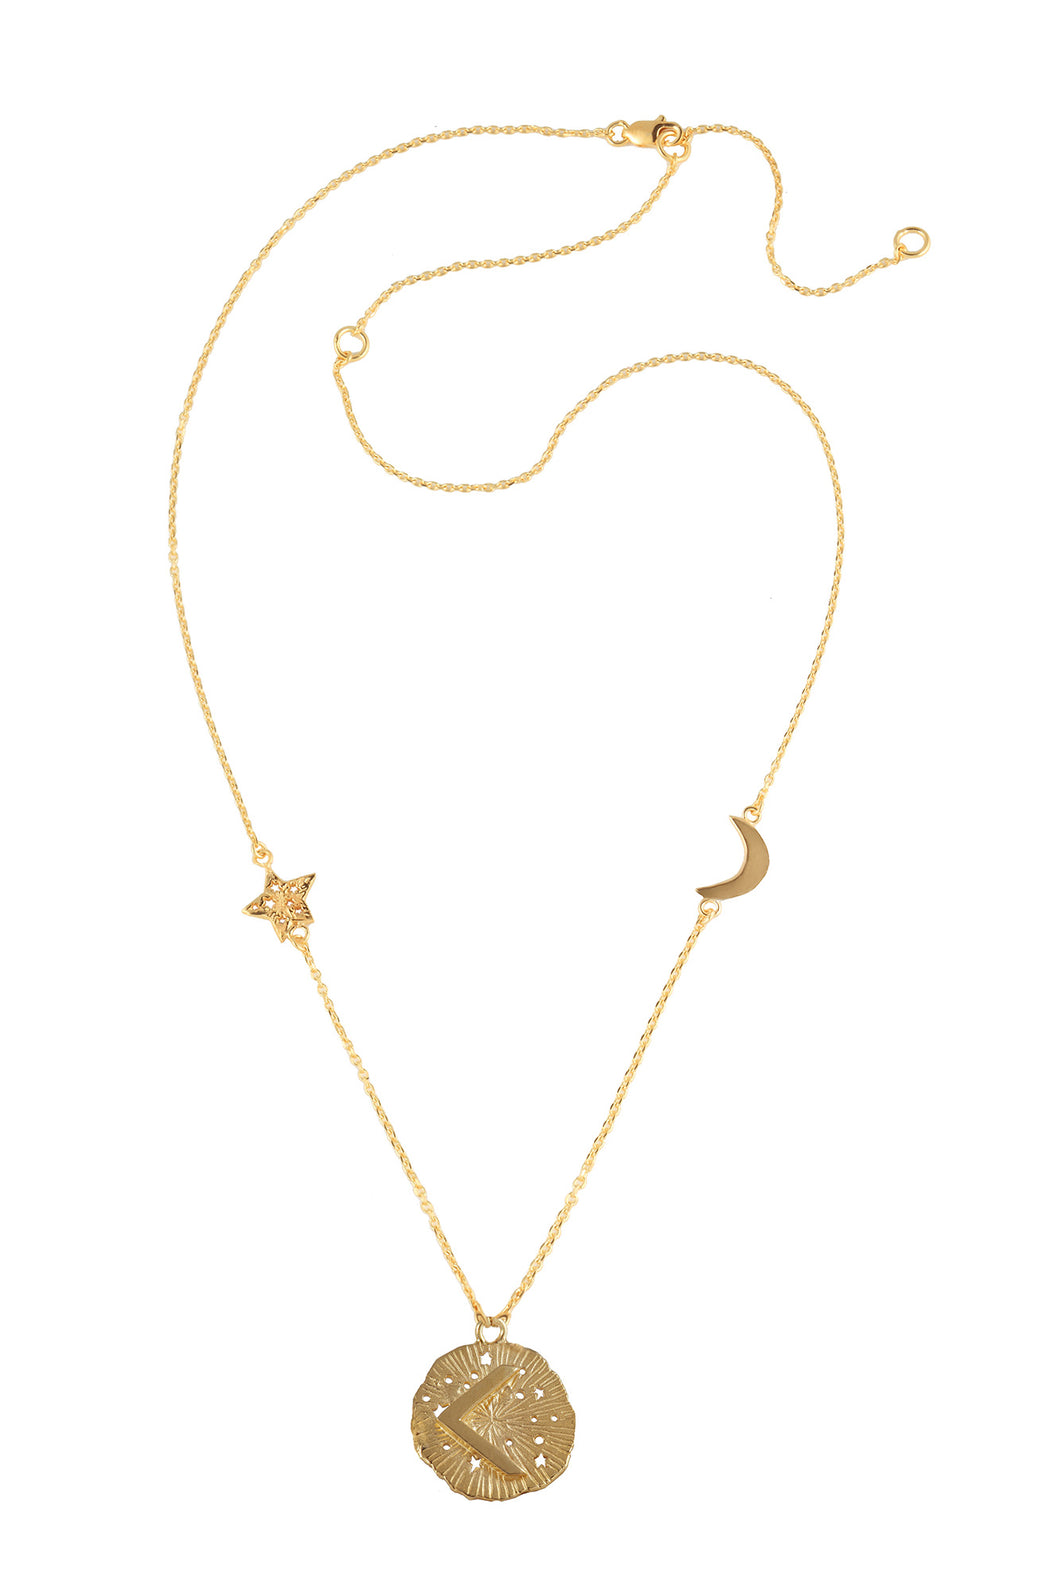 Chain necklace with small runic pendant Kenaz, star and moon, 46 сm. Gold plated.